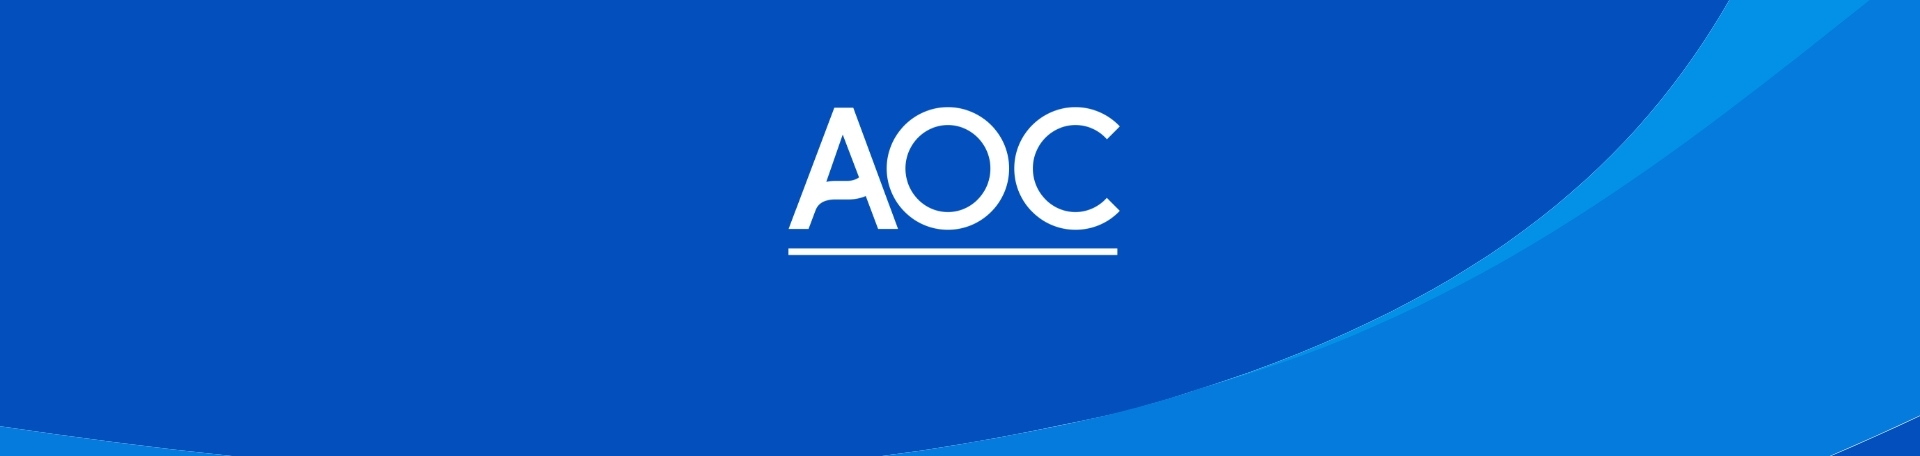 Meet with AOC during the 2019 Corrosion conference & expo